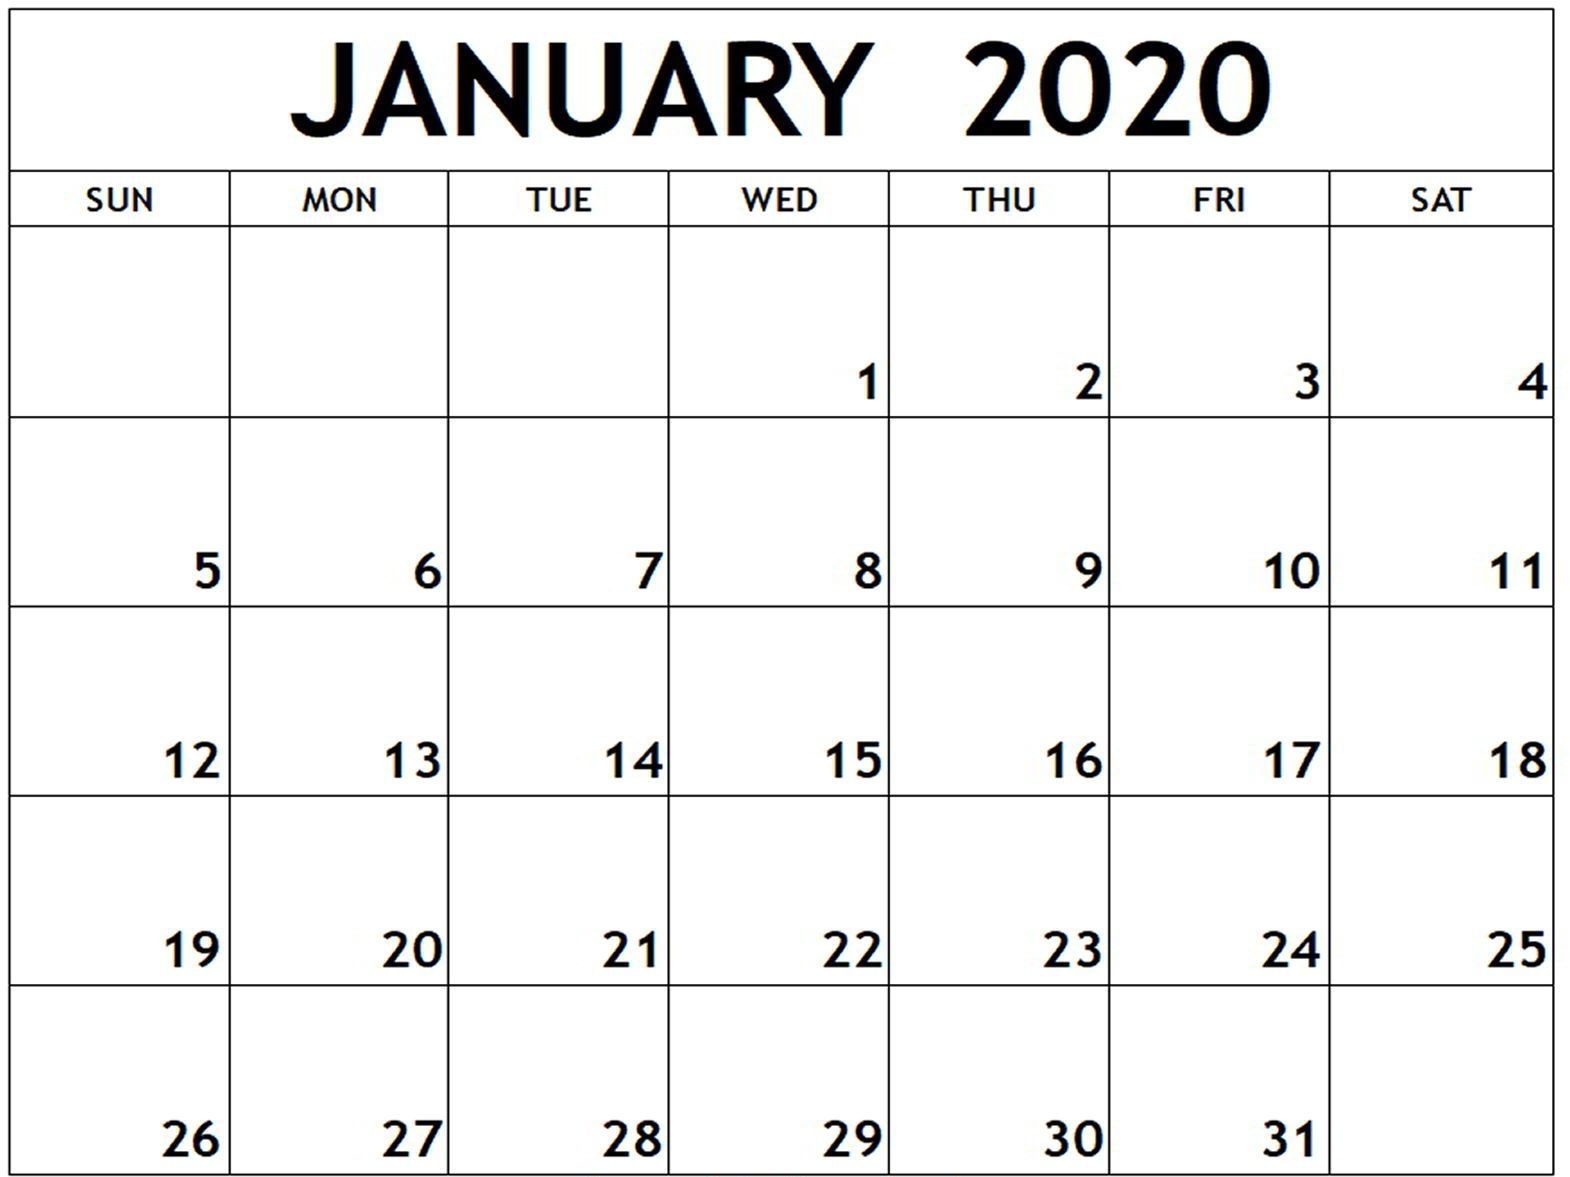 January 2020 Calendar Word Doc | Free Calendar Template